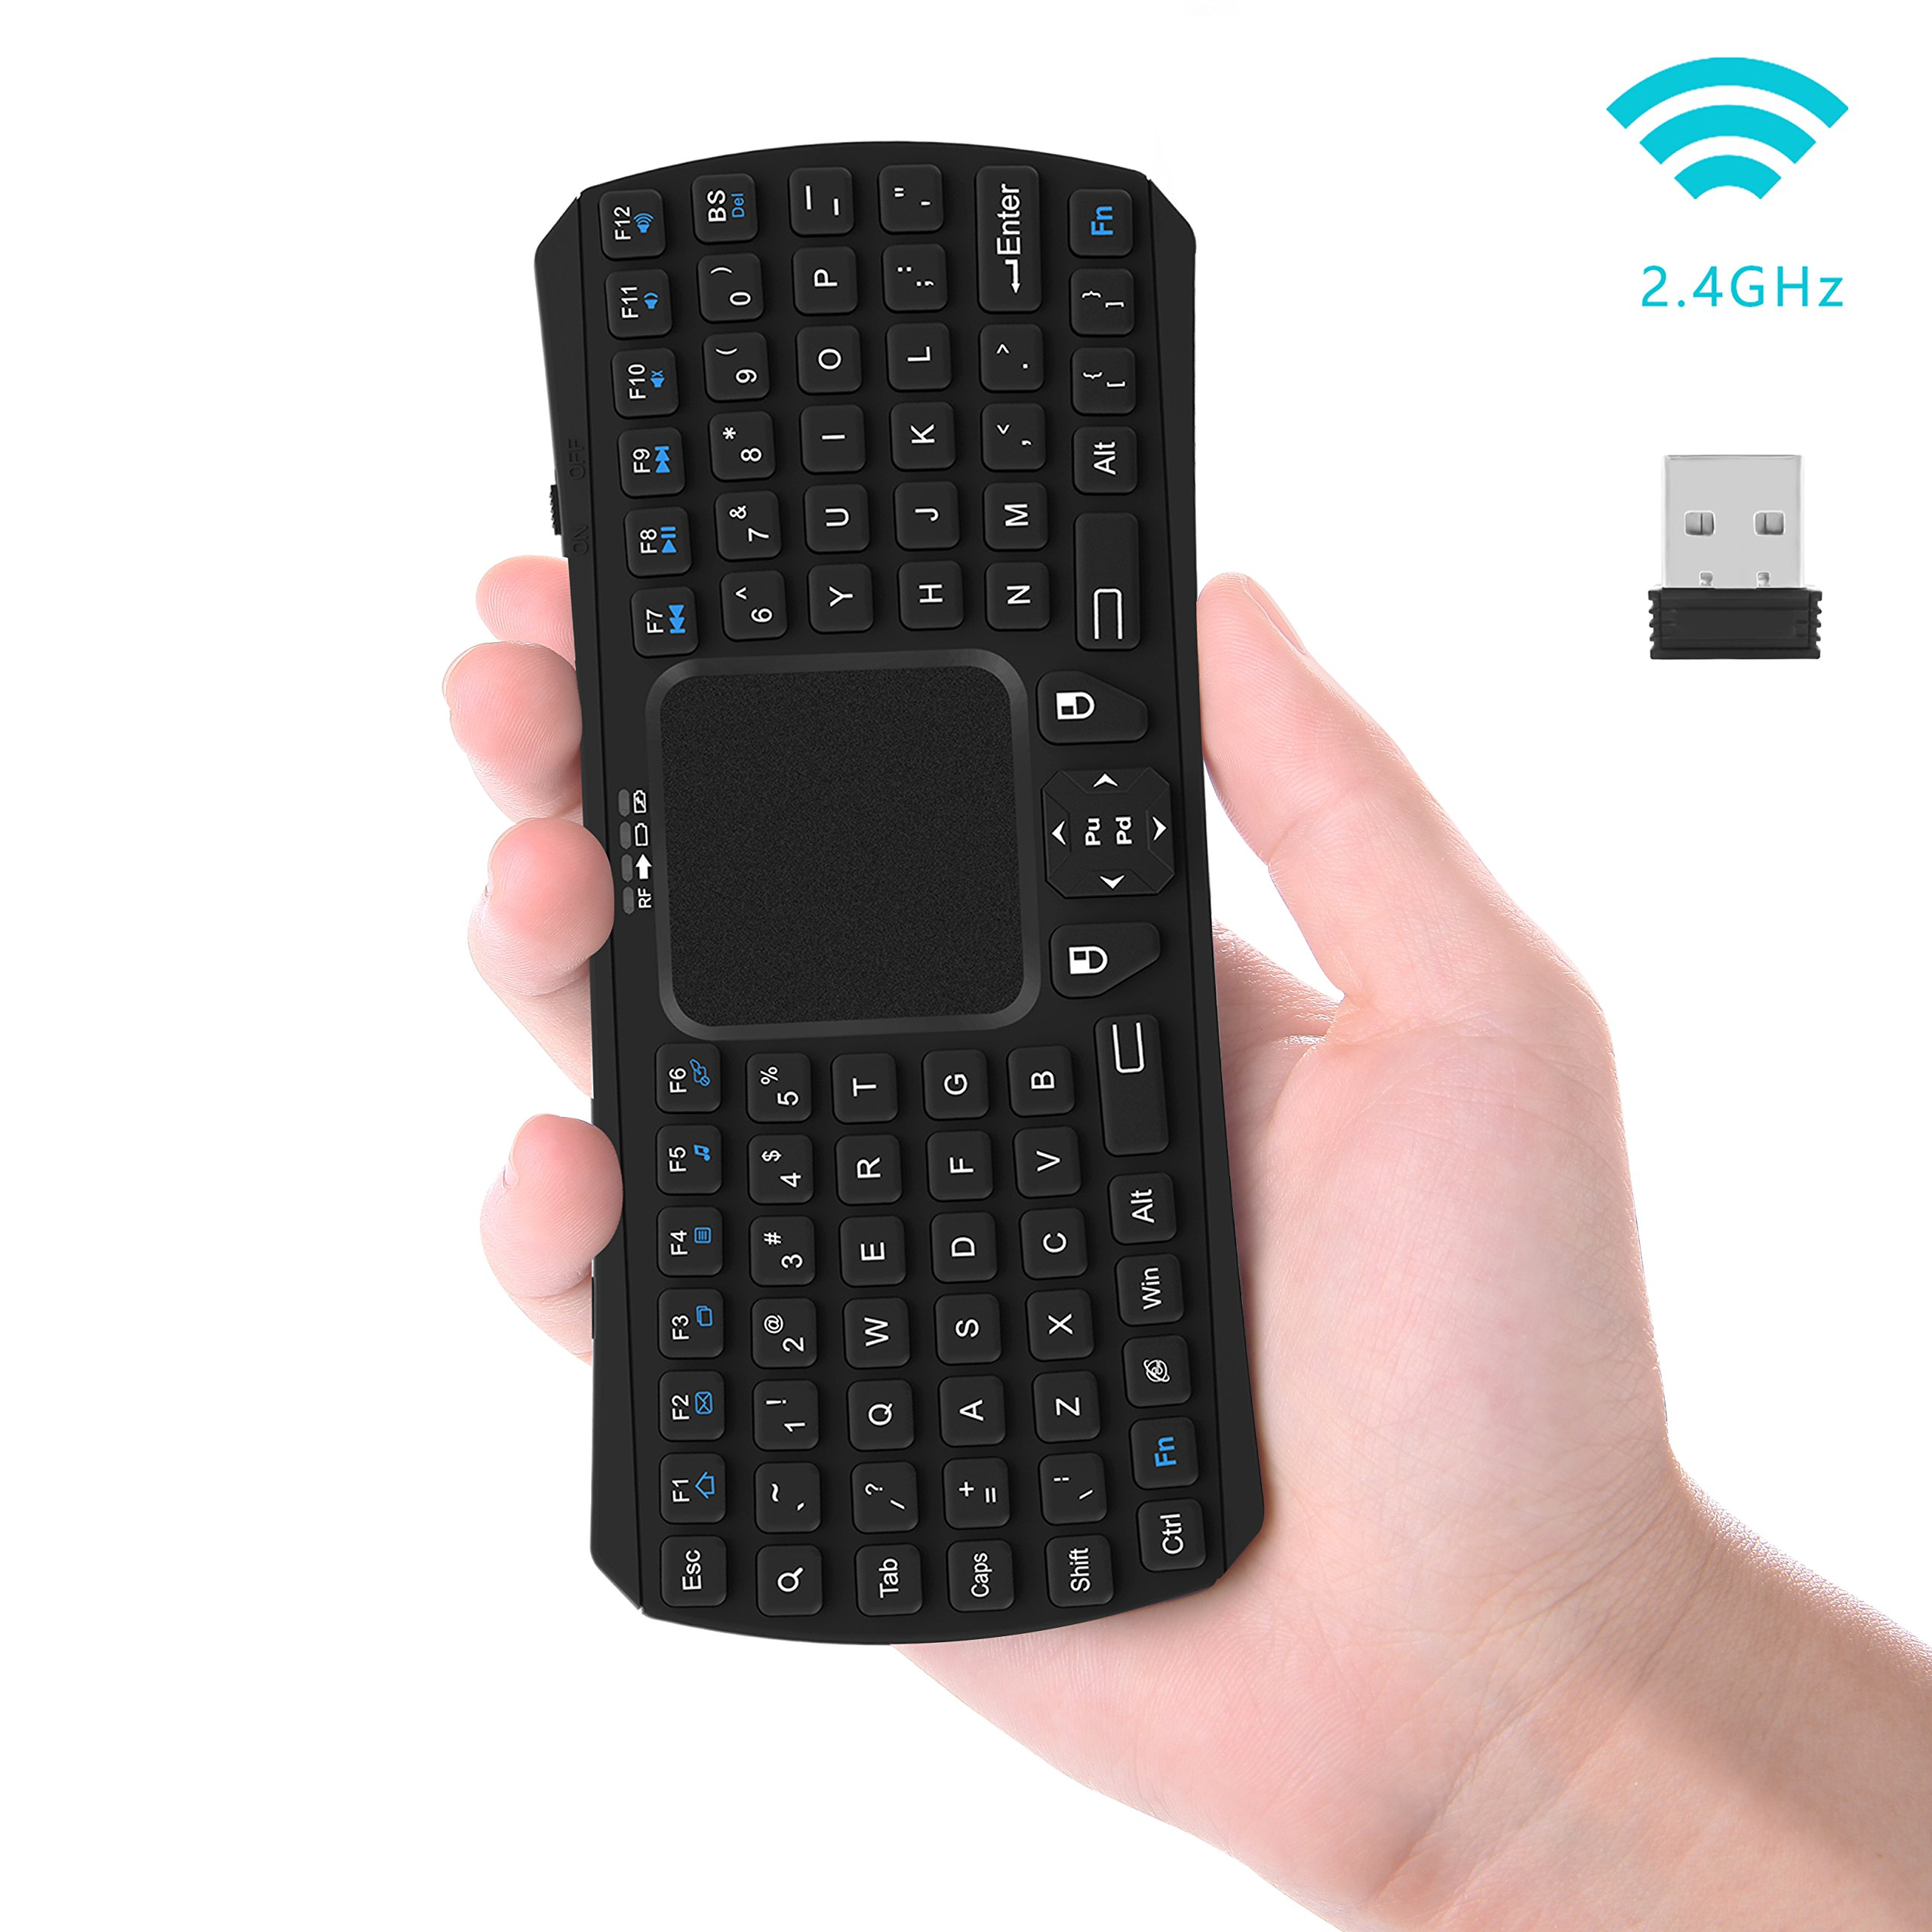 Mini Keyboard, Updated Wireless Mini Keyboard with Touchpad Mouse and Multimedia Keys : Jelly Comb 2.4Ghz USB Rechargable Handheld Remote Control Keyboard for PC, HTPC, X-Box, Android TV Box,Smart TV